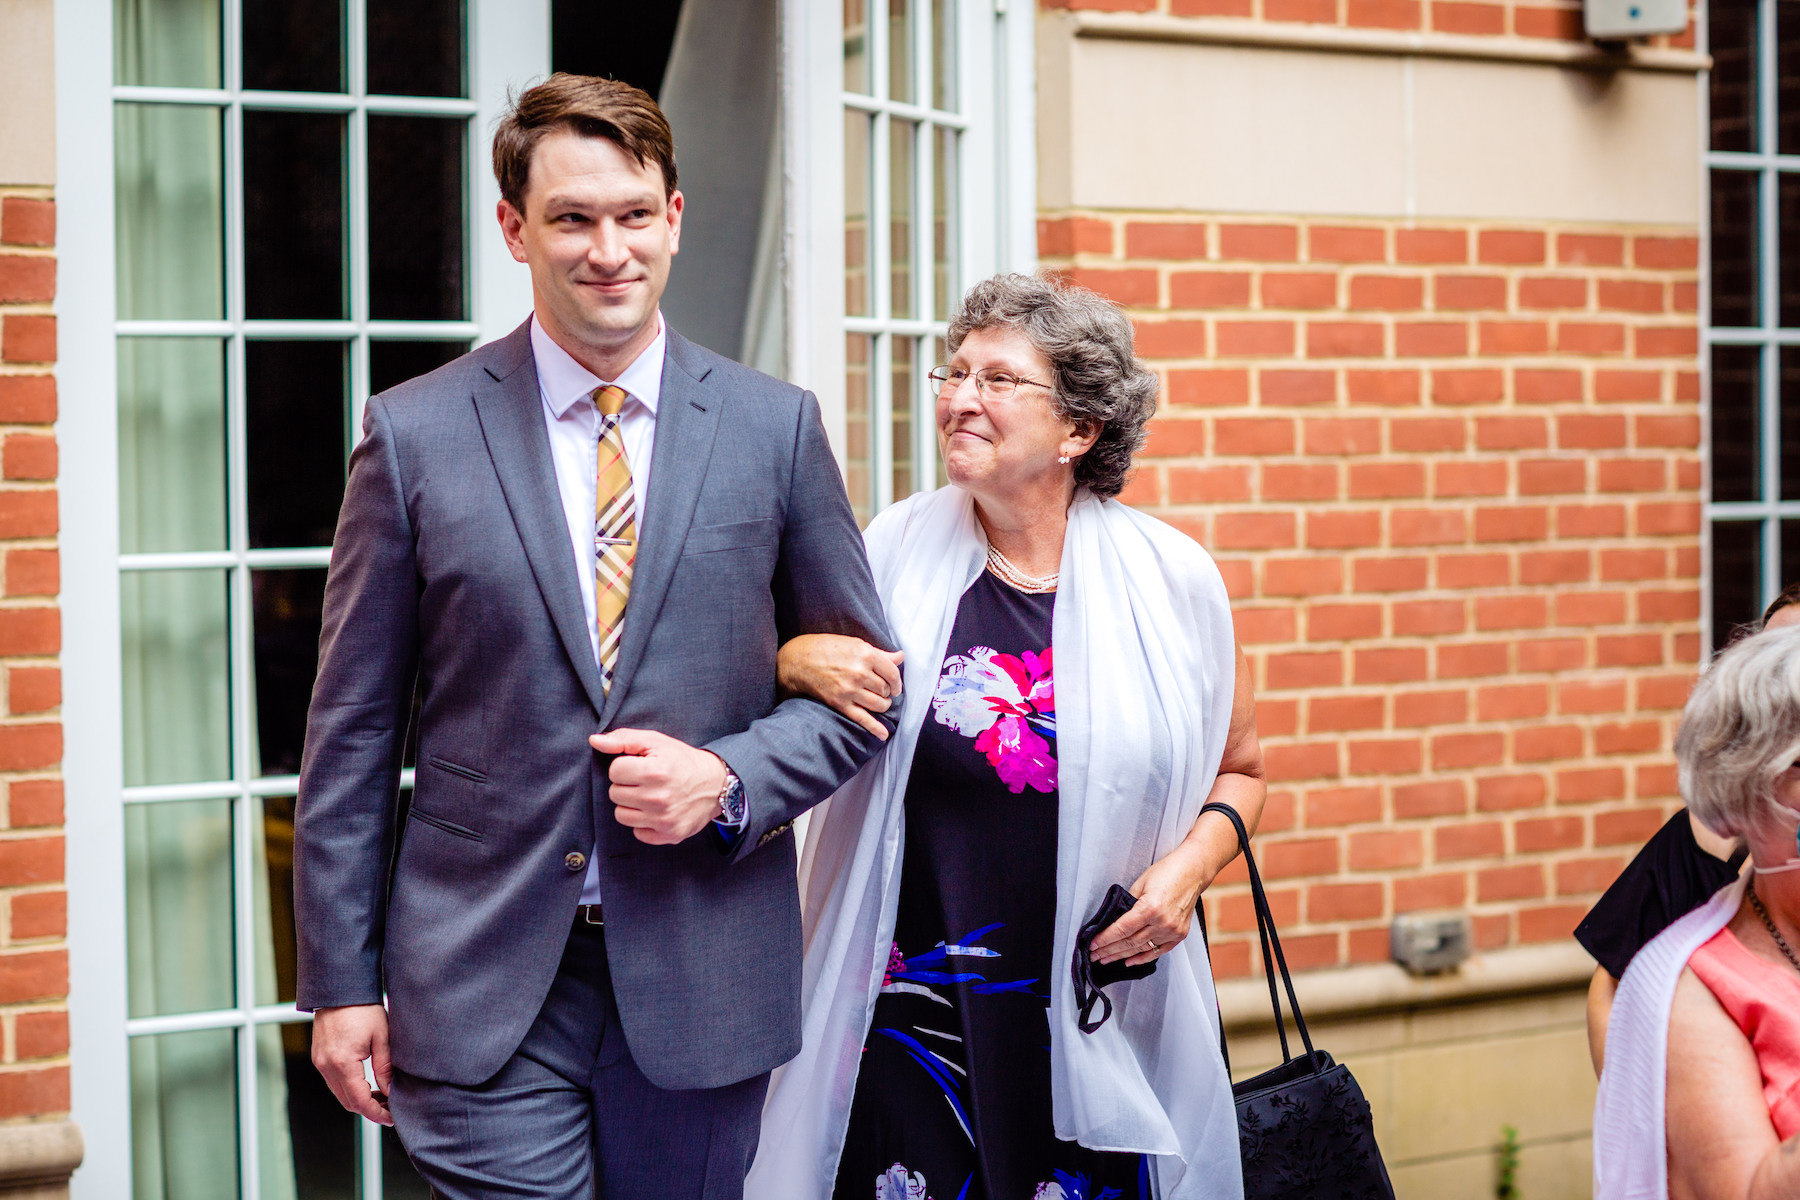 Outdoor Elopement Photos from Virginia | The groom enters and begins walking down the aisle